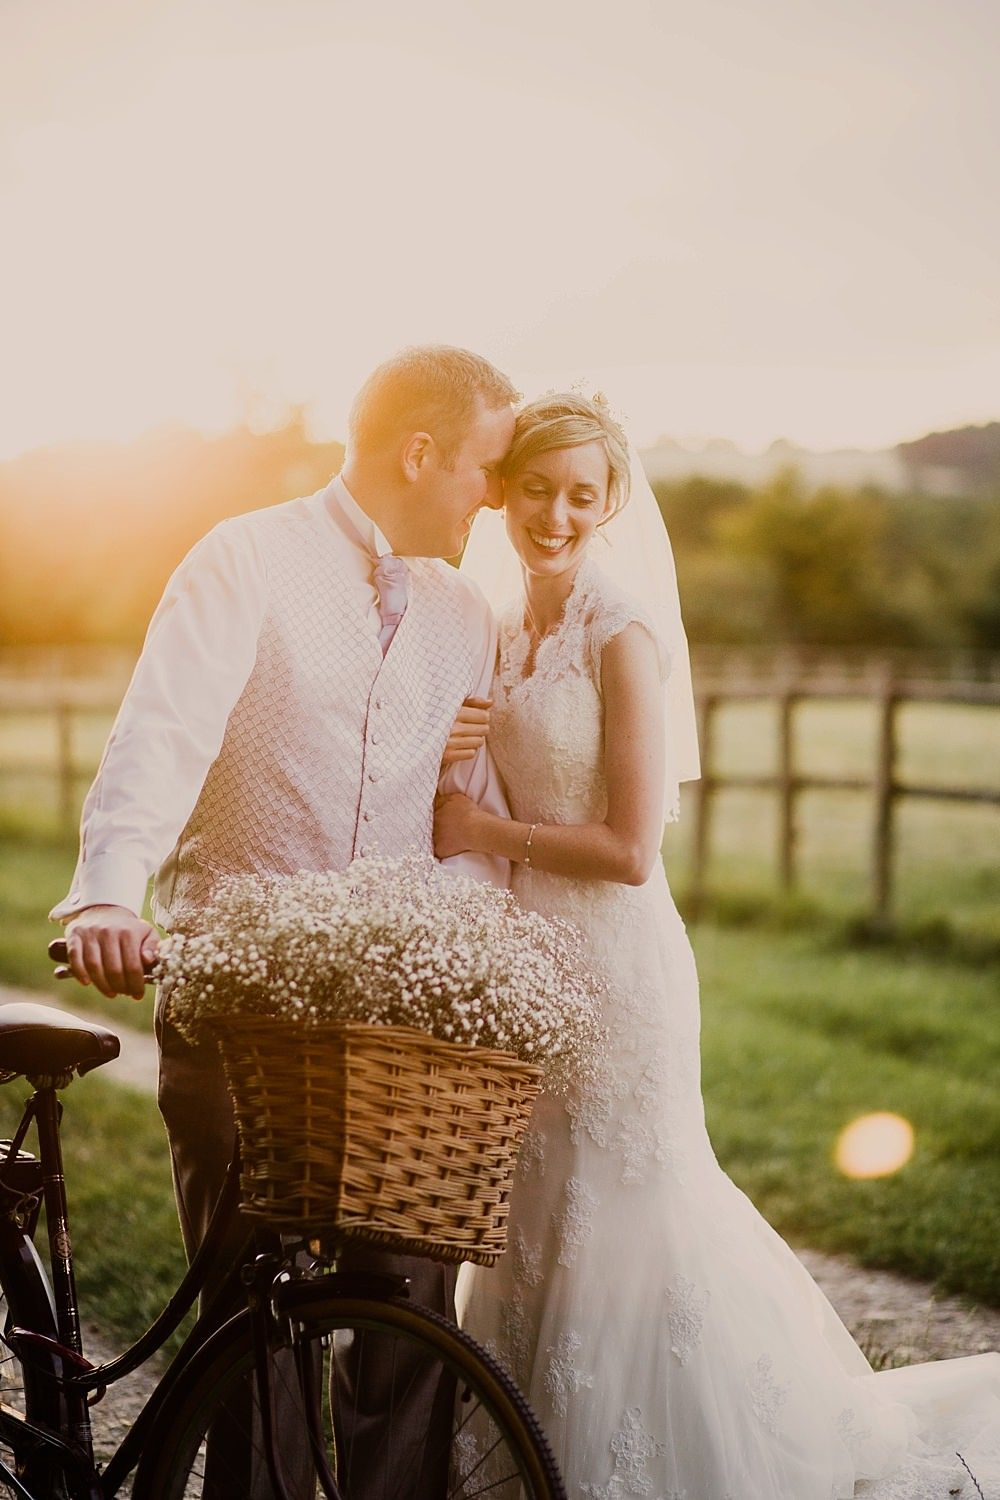 Sottero u midgely lace wedding dress for a rustic country wedding in